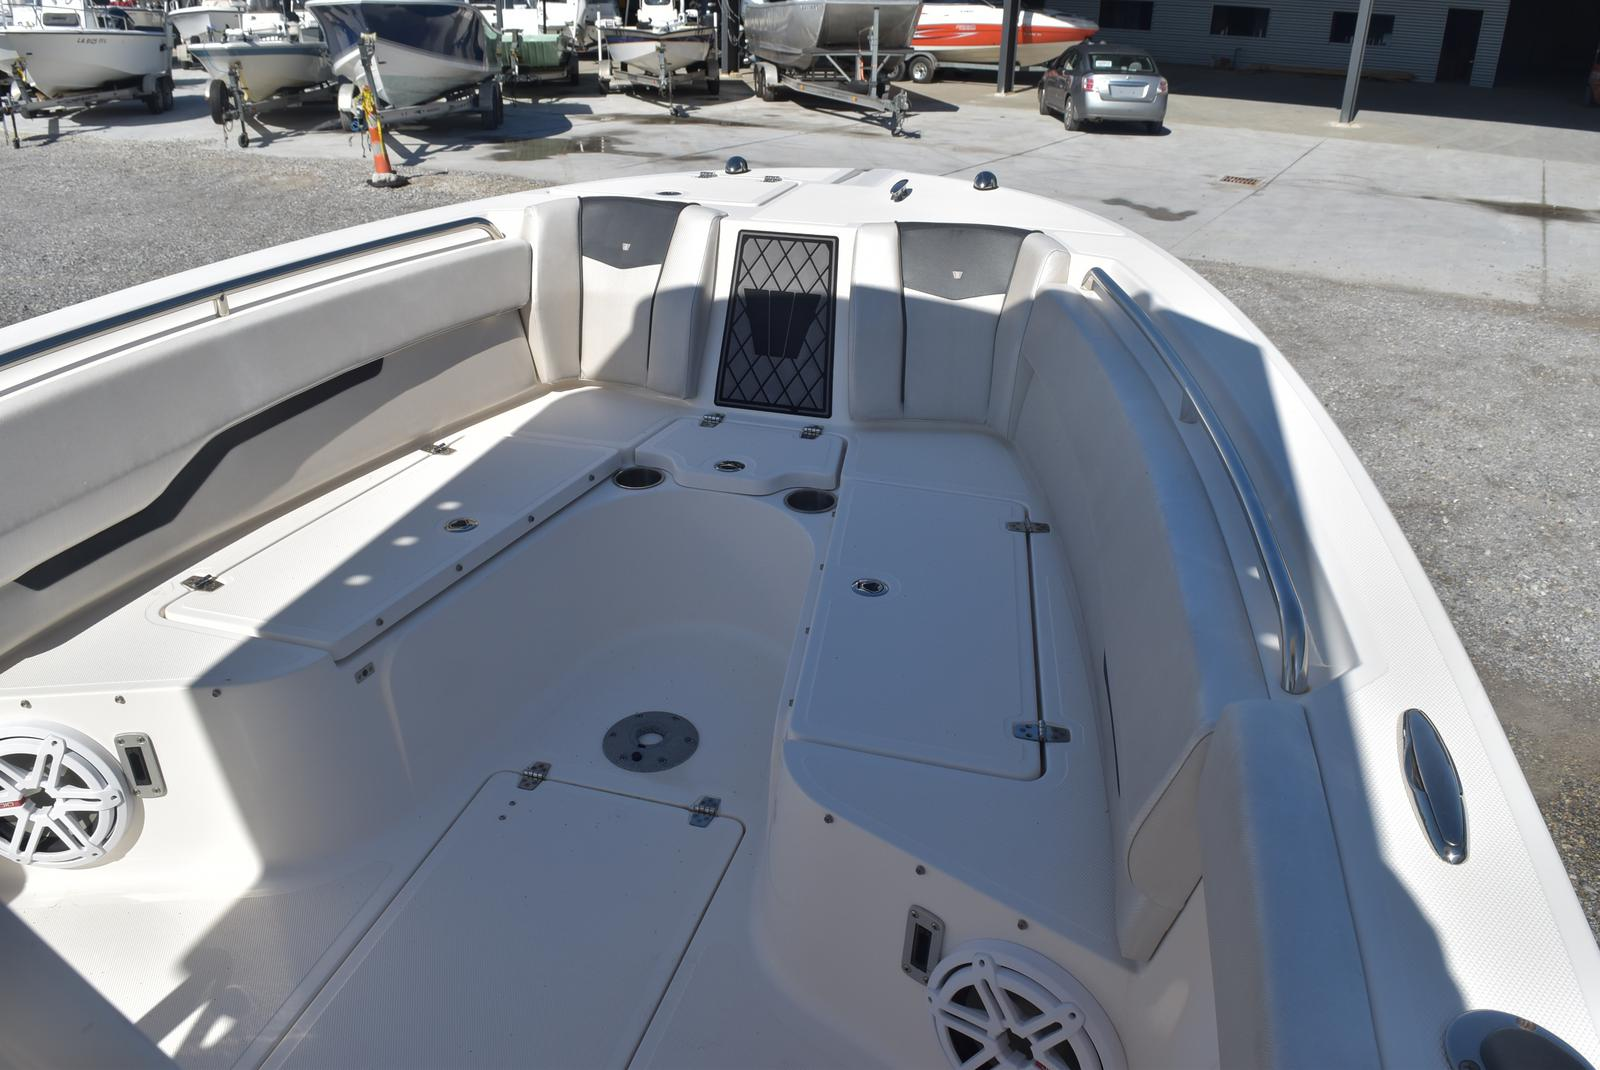 2016 Wellcraft boat for sale, model of the boat is 242 & Image # 14 of 19